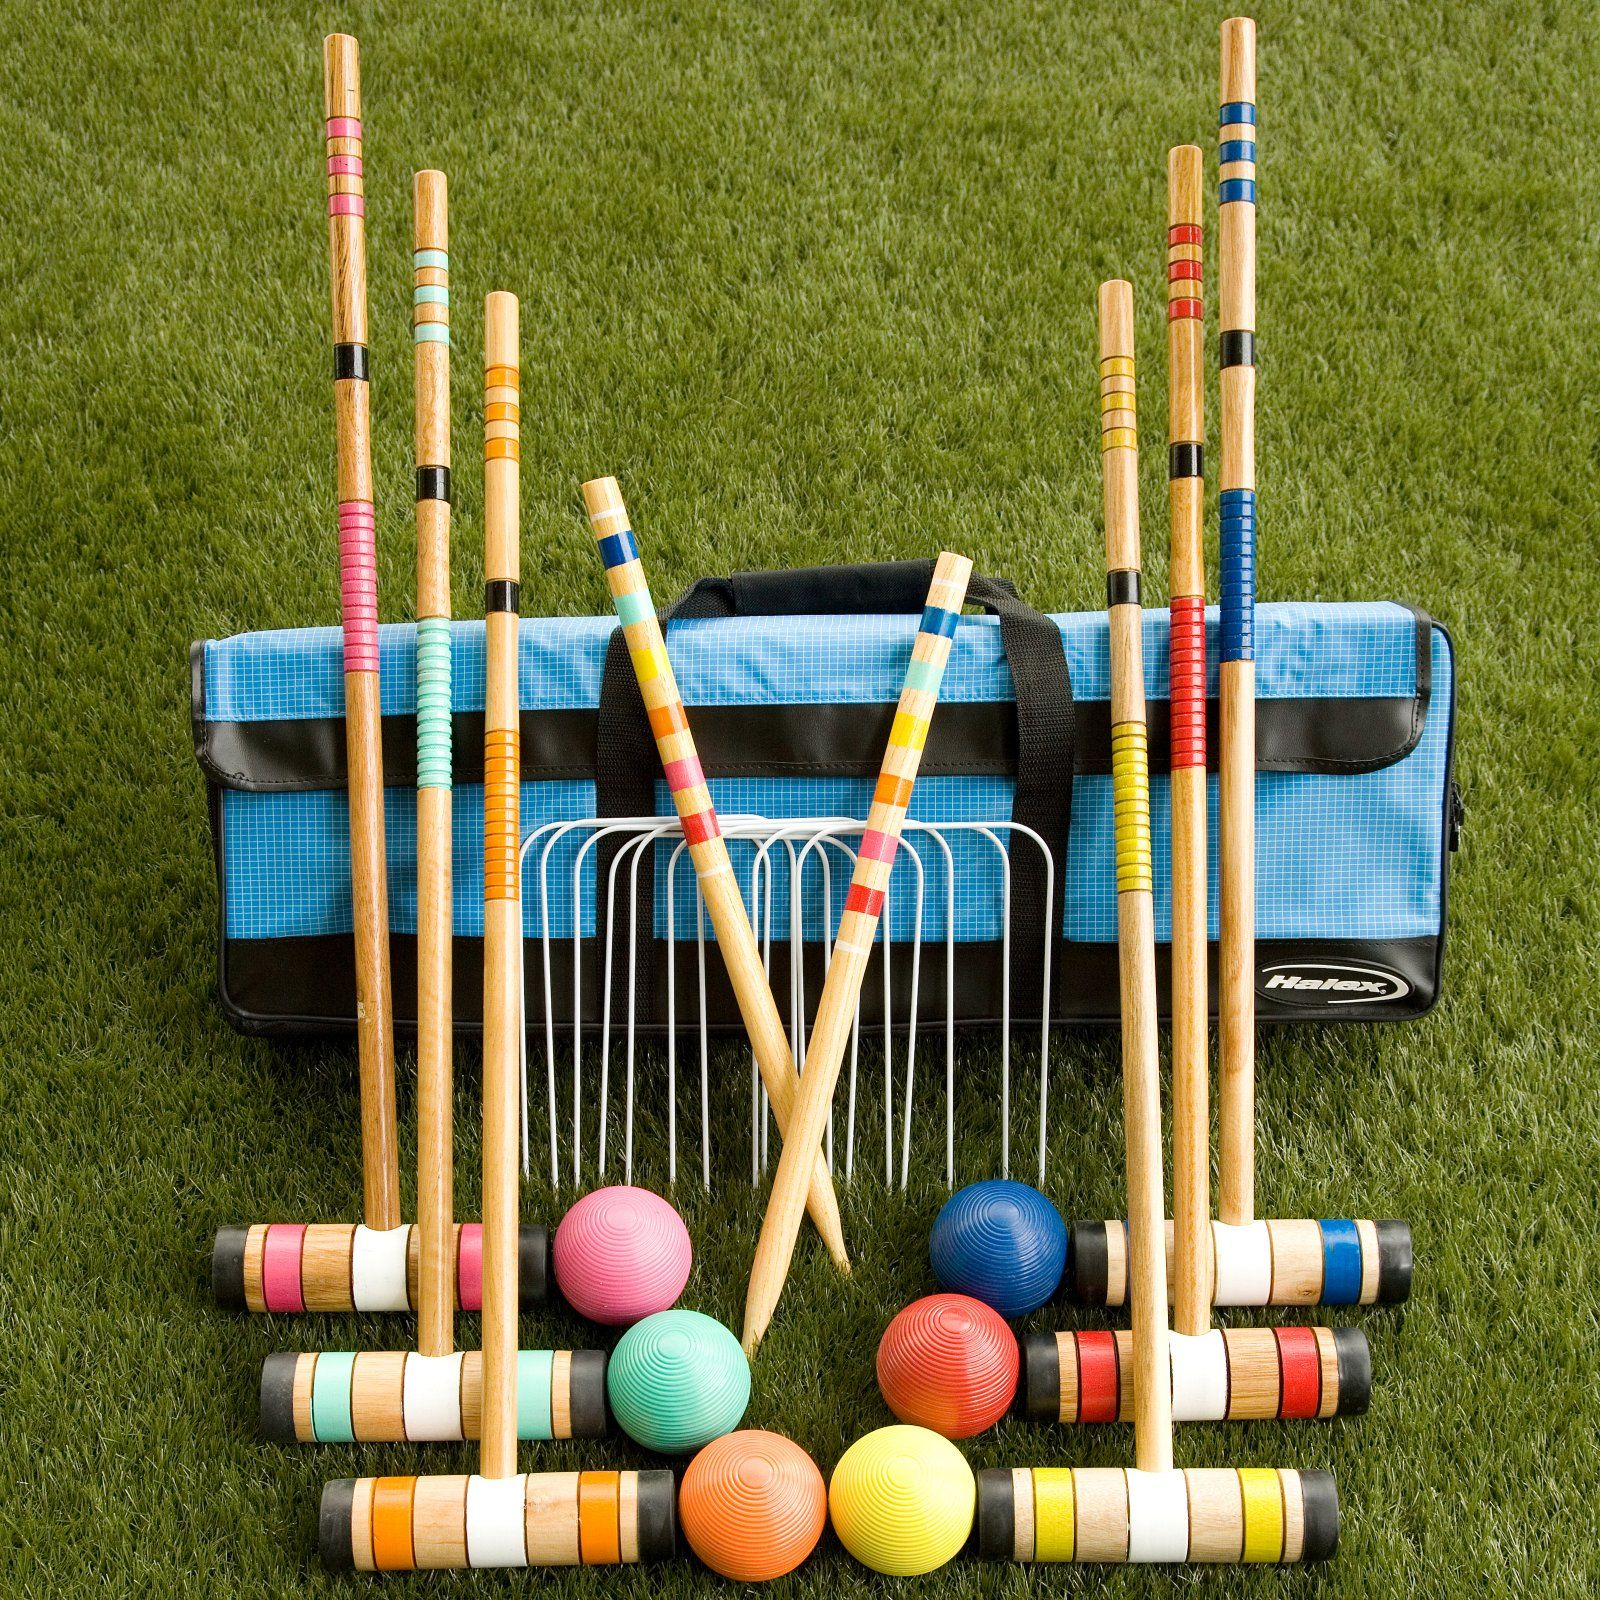 Croquet Game : Croquet+Game Lawn croquet old boy When I was young Pinterest